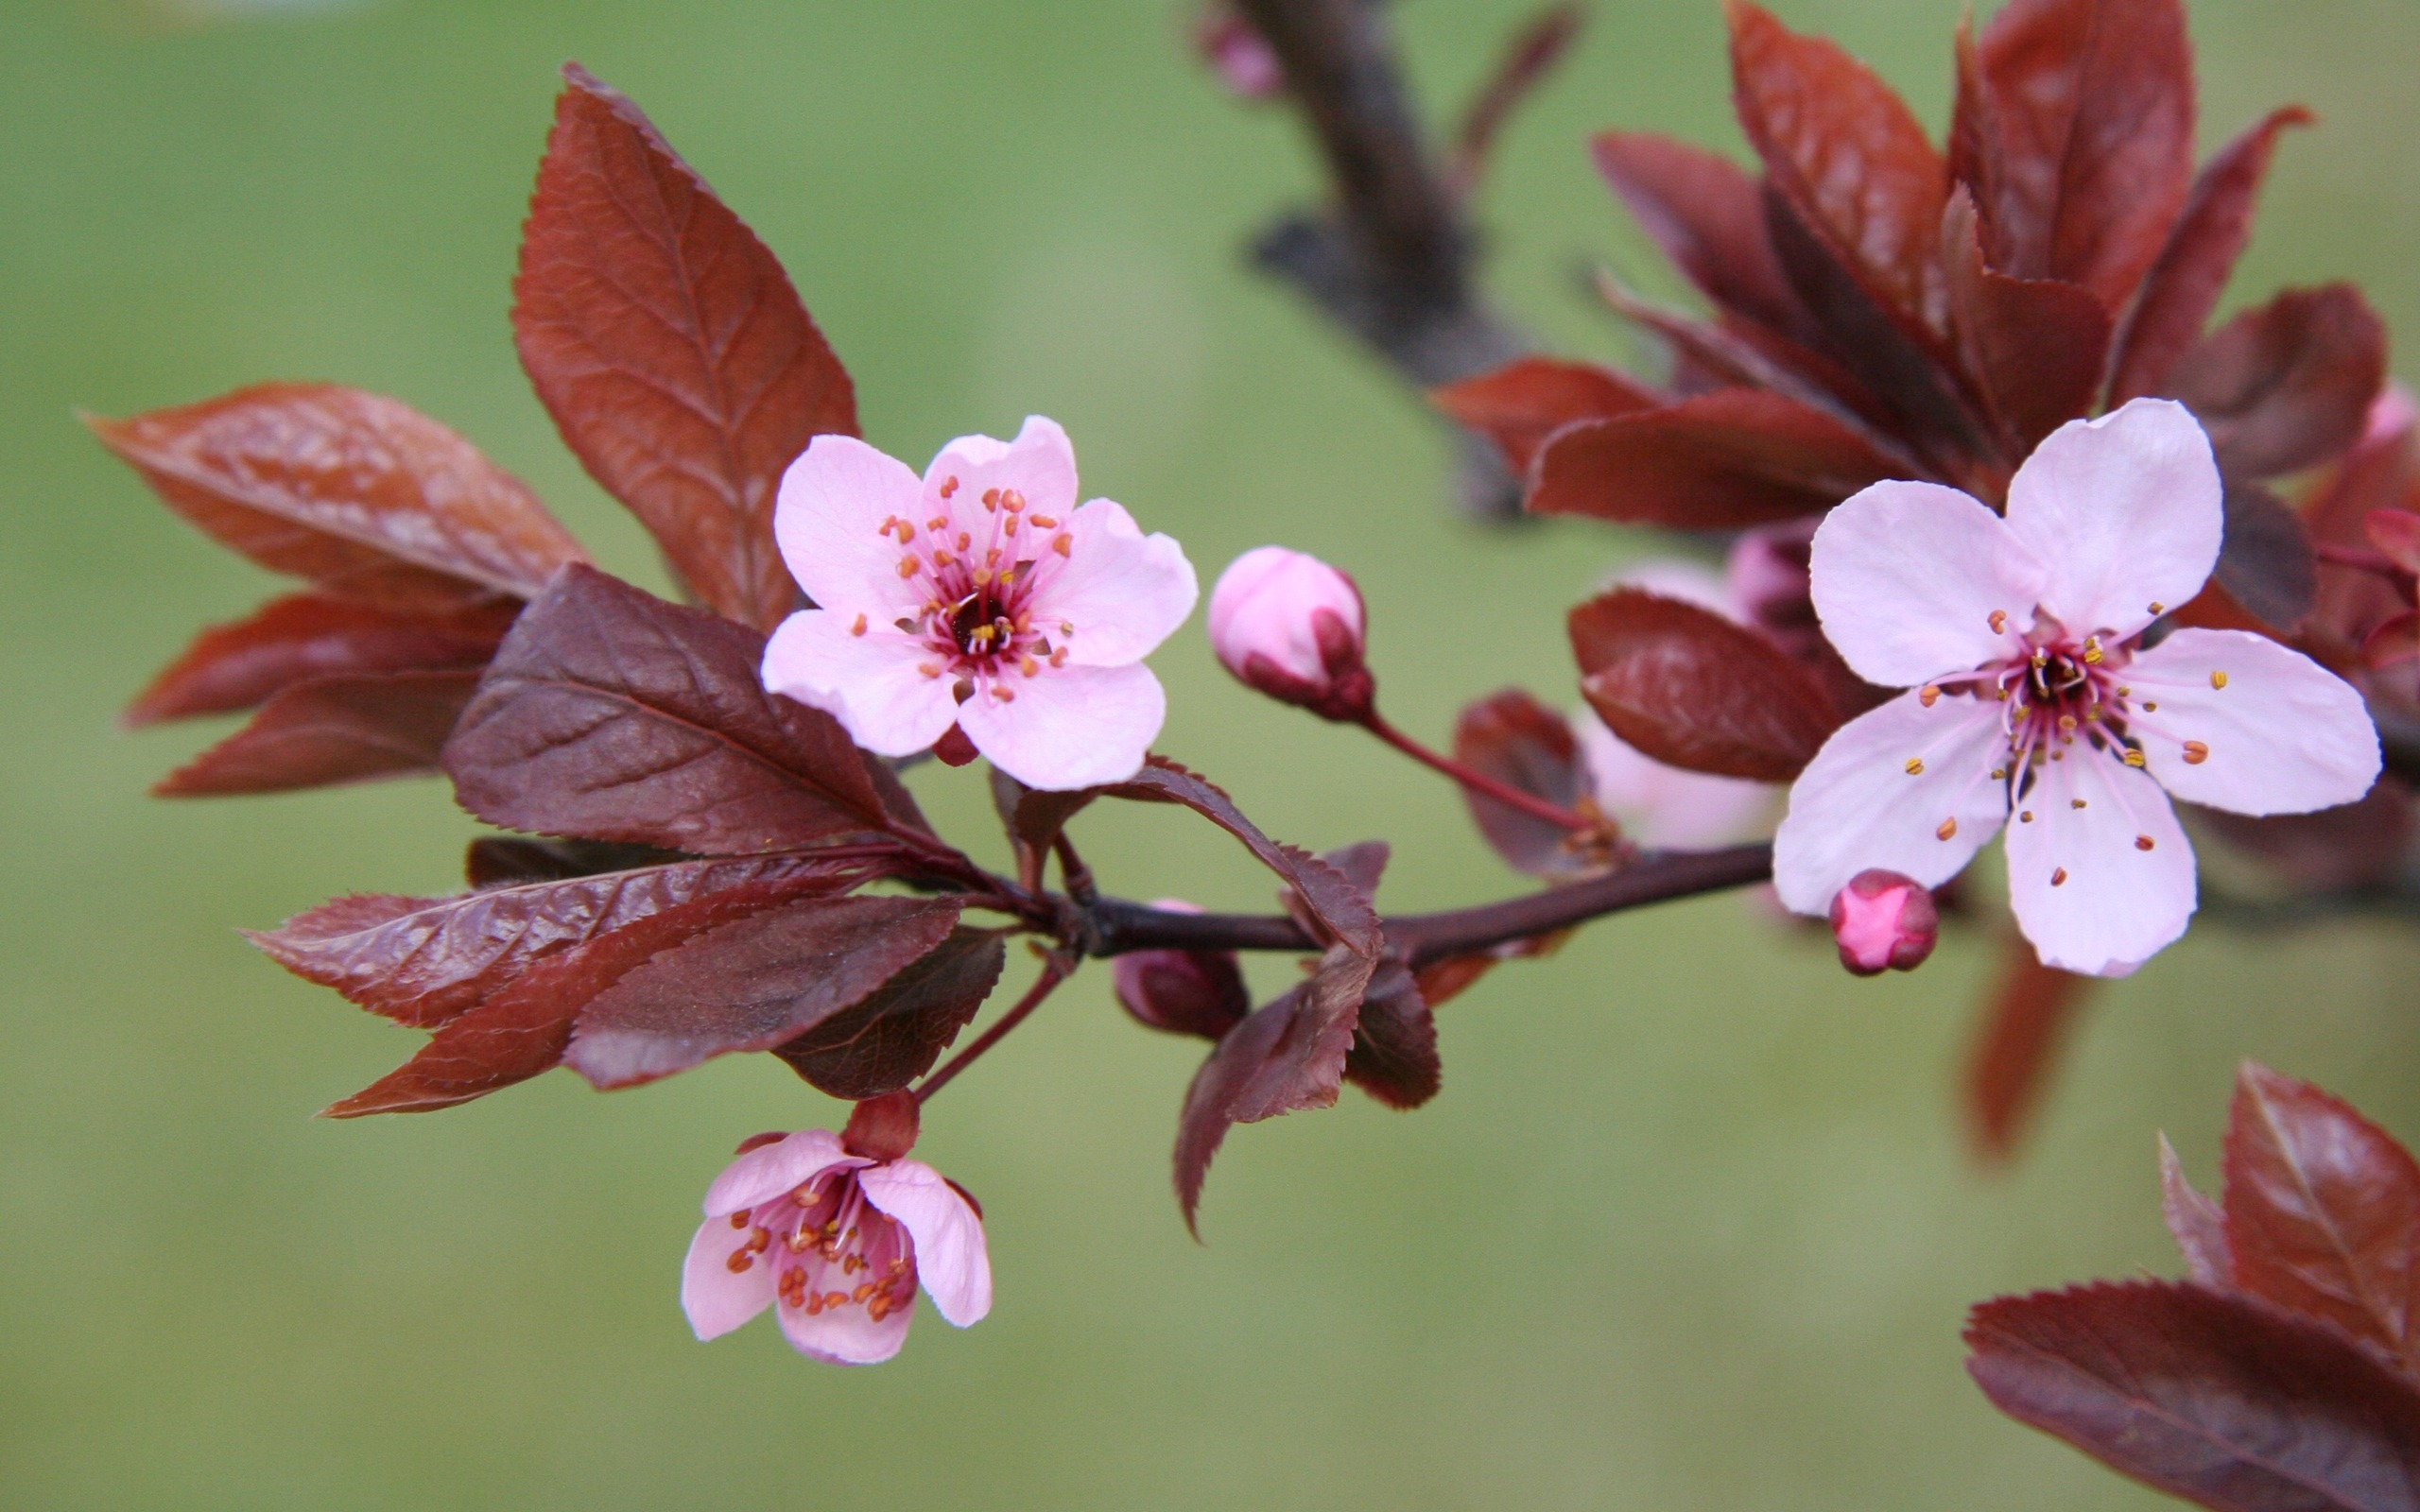 13 Cherry Blossom Branch Photography Images - Cherry ...